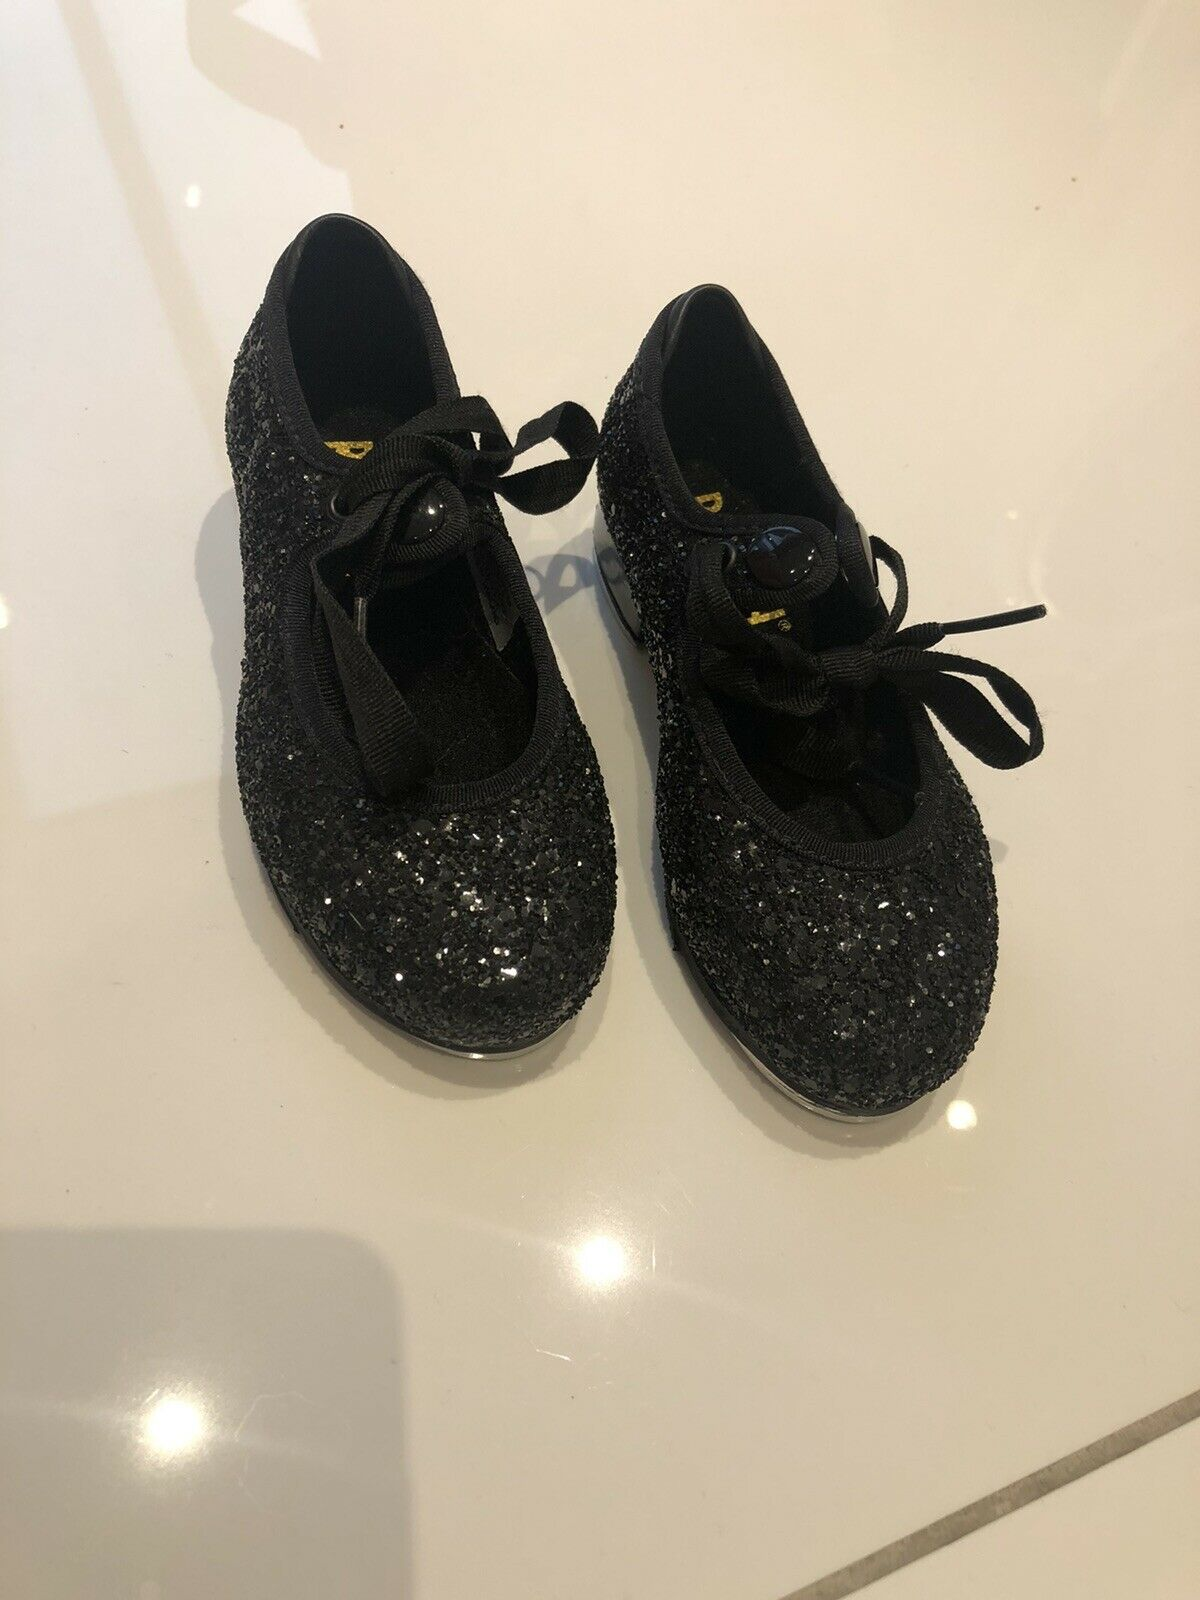 bloch tap shoes 7.5 Brand New, Never Worn